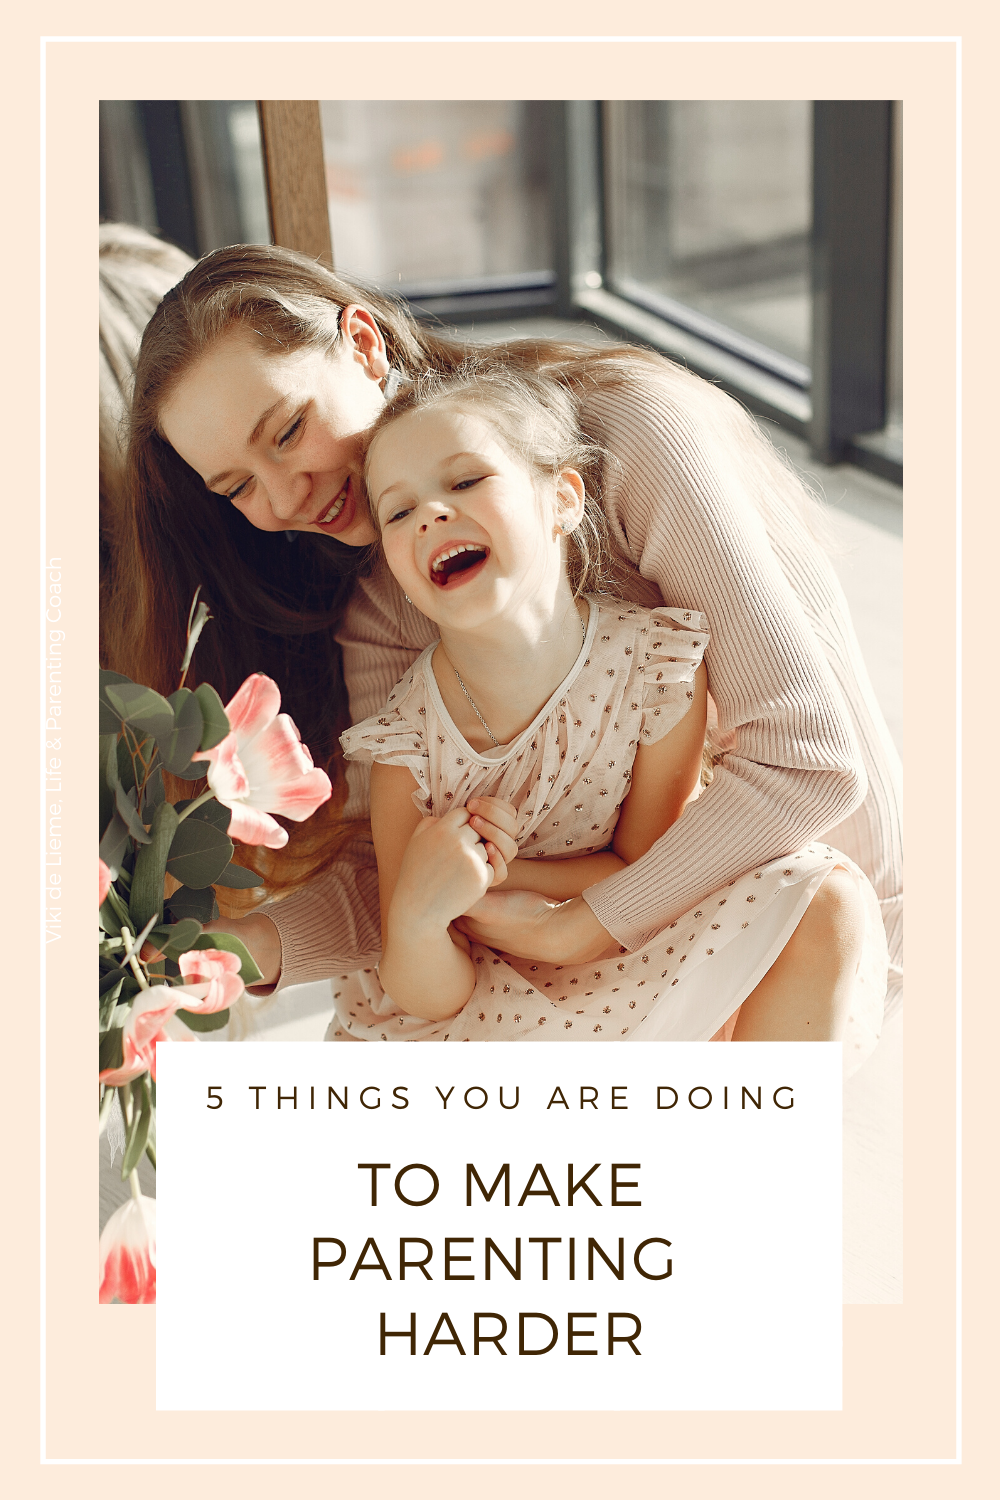 There are a few things that most parents do that makes #parenting so much harder. taking things personally is just one of them.. Click and read the full list to learn what to do instead and how to live a connected and happy #family life #positivecommunication #positiveparenting #smartparenting #motherhood #raisingkids